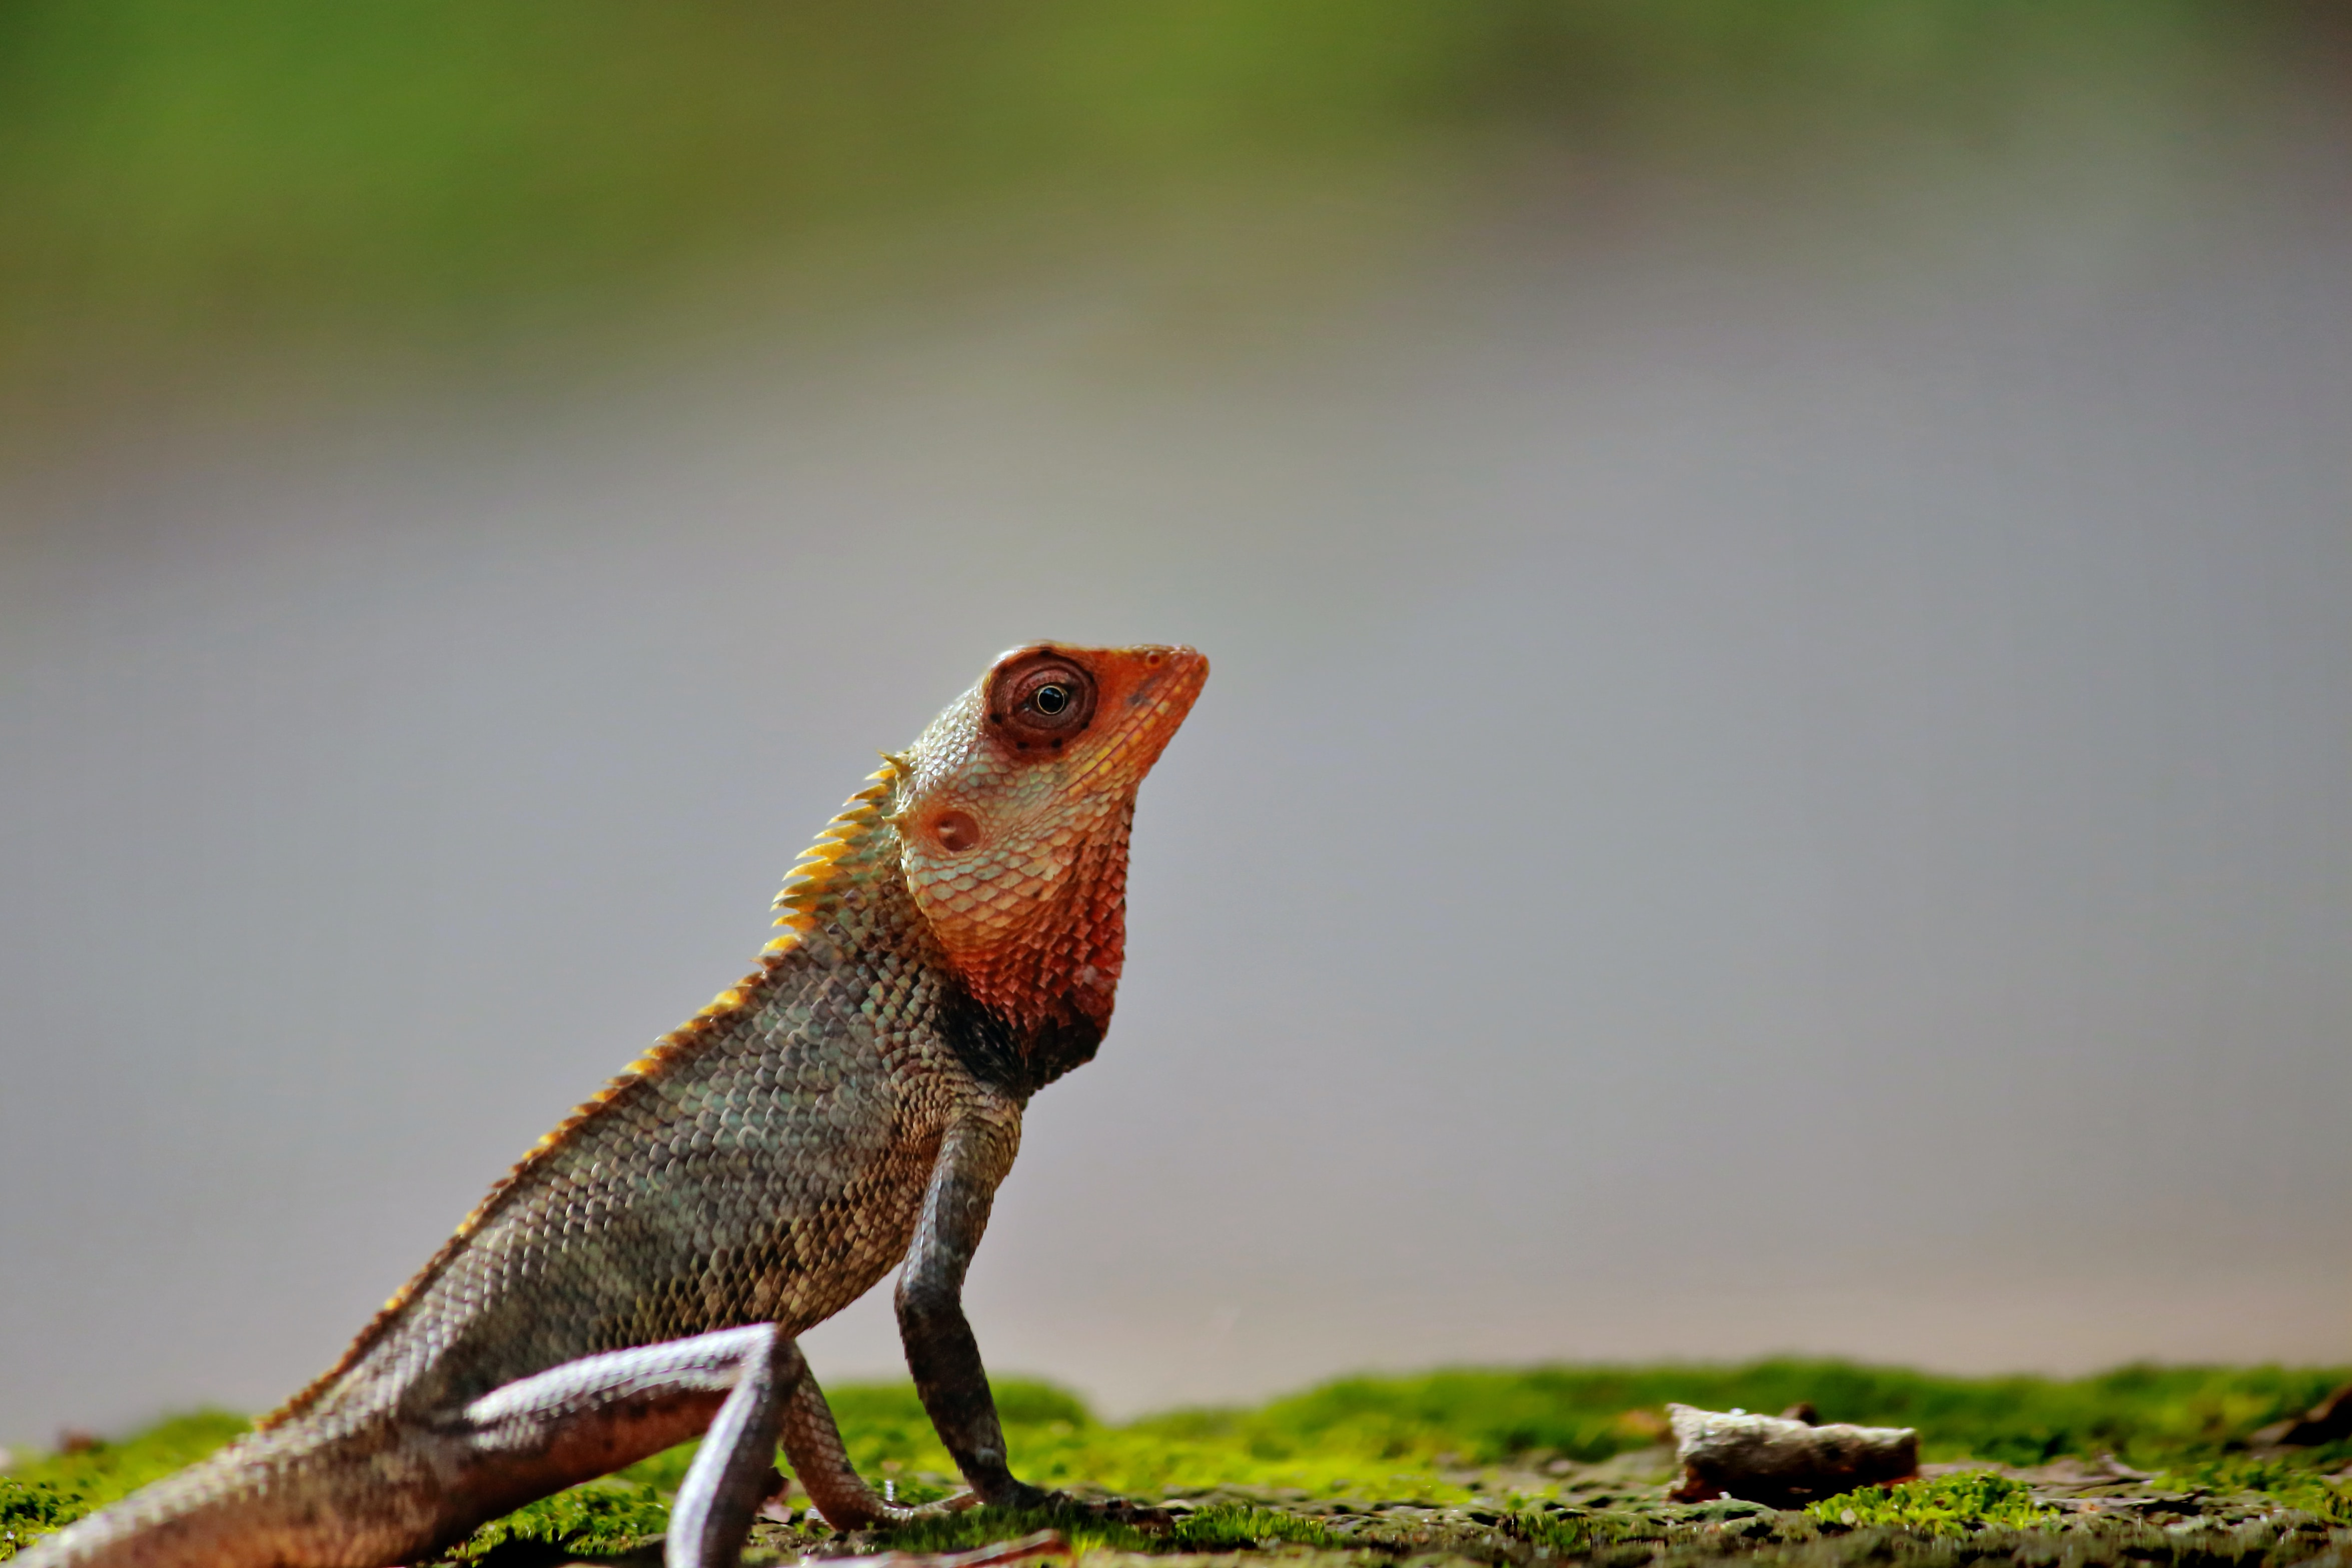 shallow focus photography of bearded dragon